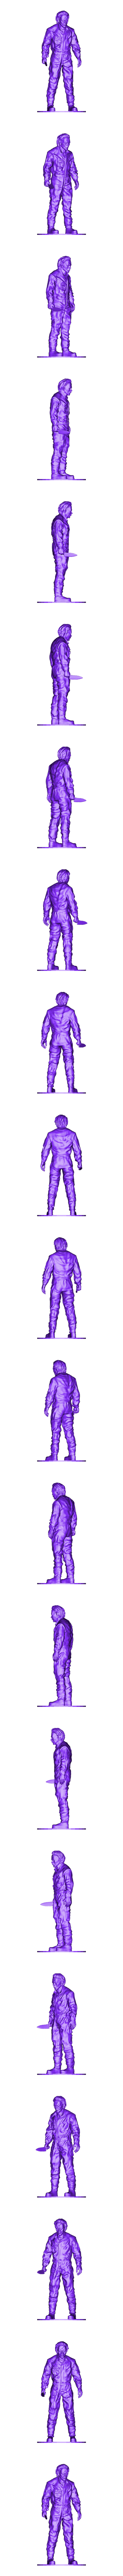 MM_150mm.stl Download STL file Michael Myers, Figurine • 3D printing template, NickeysHatchery